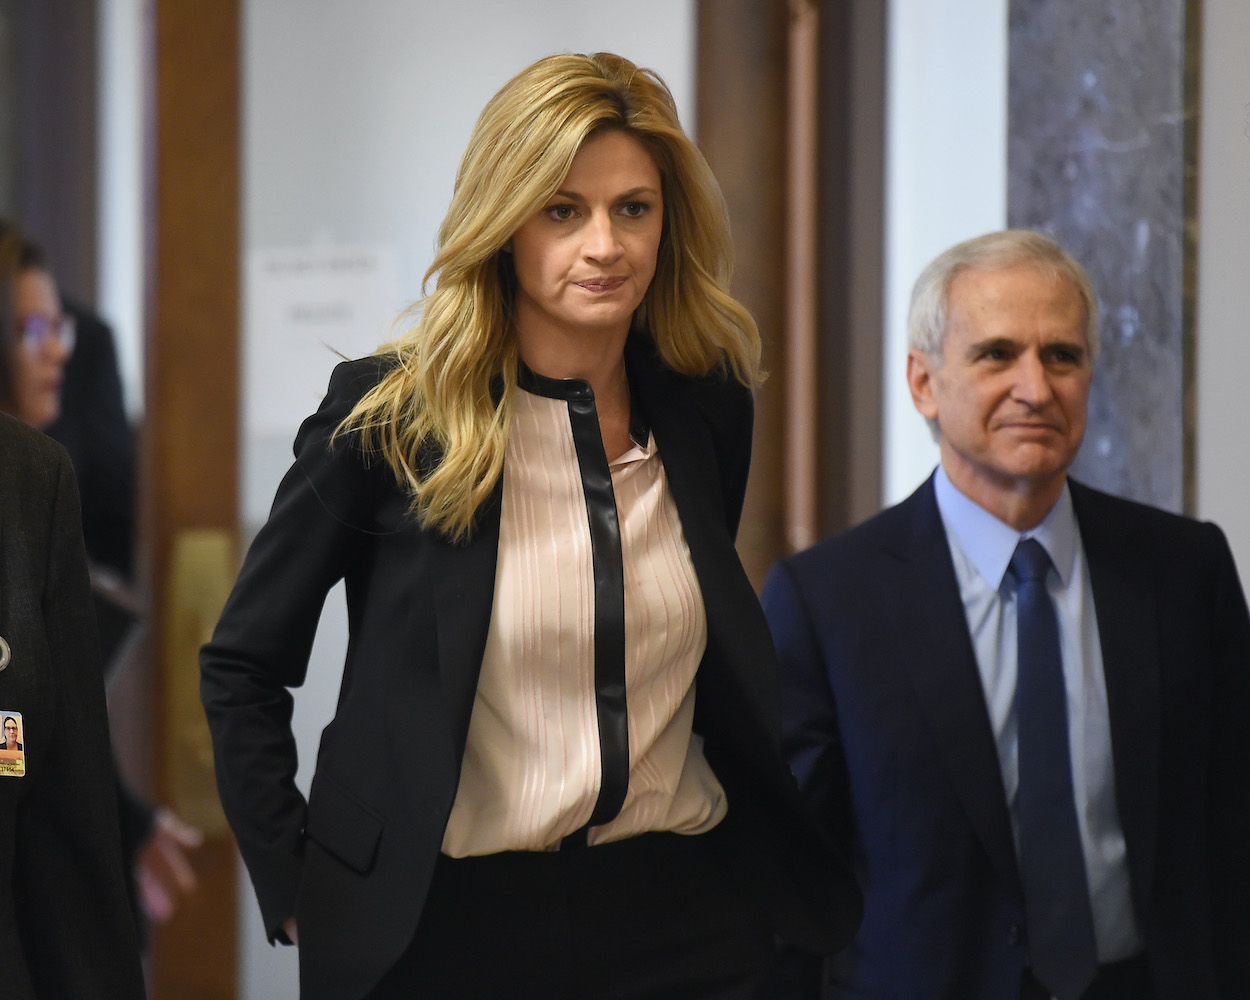 Sportscaster Erin Andrews was secretly filmed nude in 2008, but she was later awarded $55 million for her most scarring nightmare.